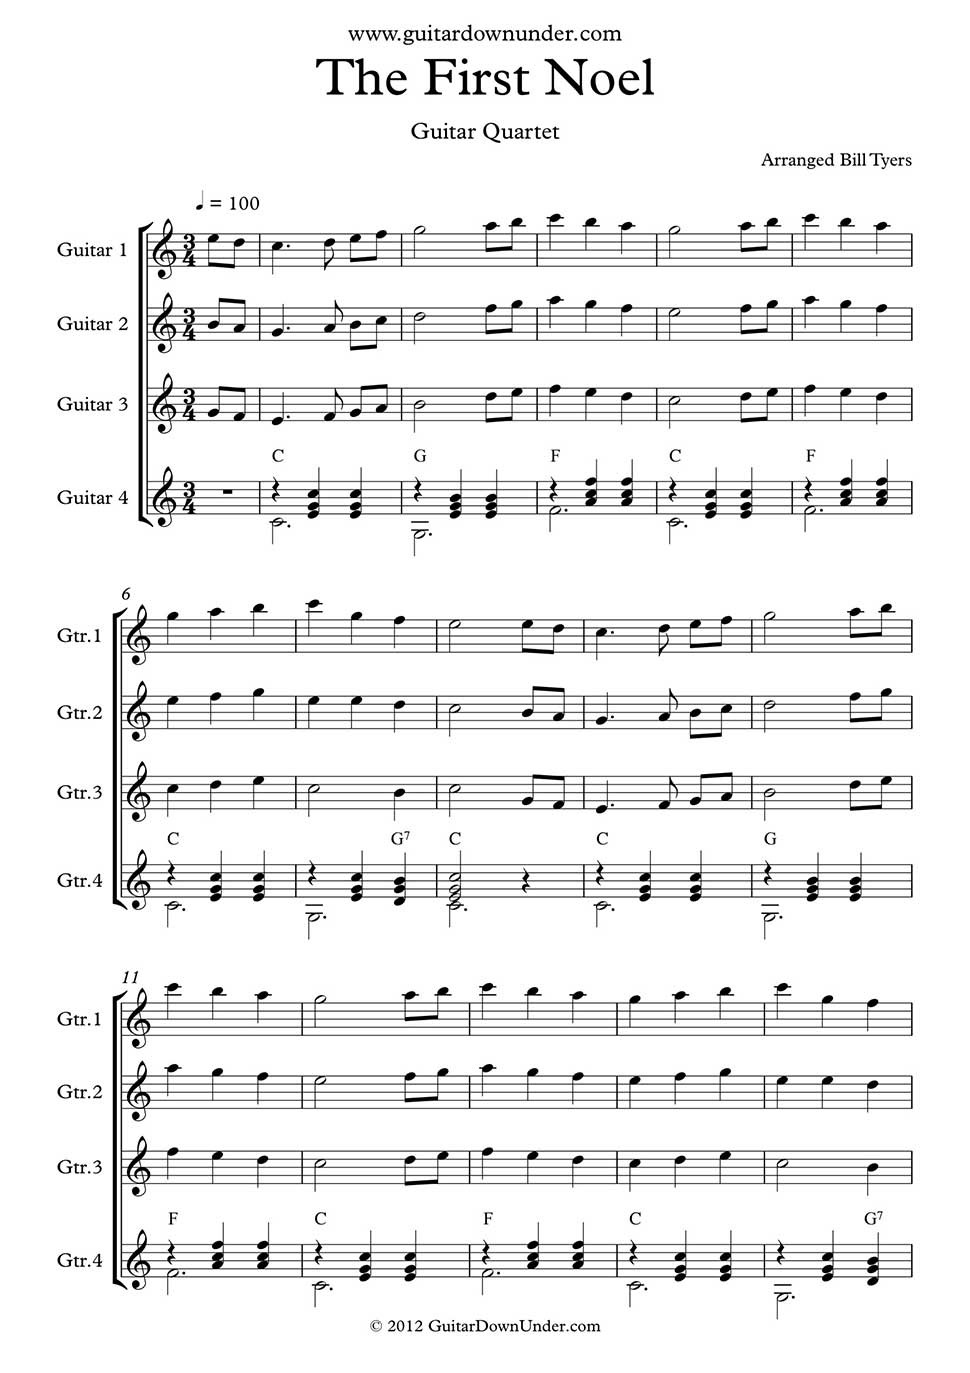 The First Noel Arranged For Classical Guitar Quartet By Bill Tyers